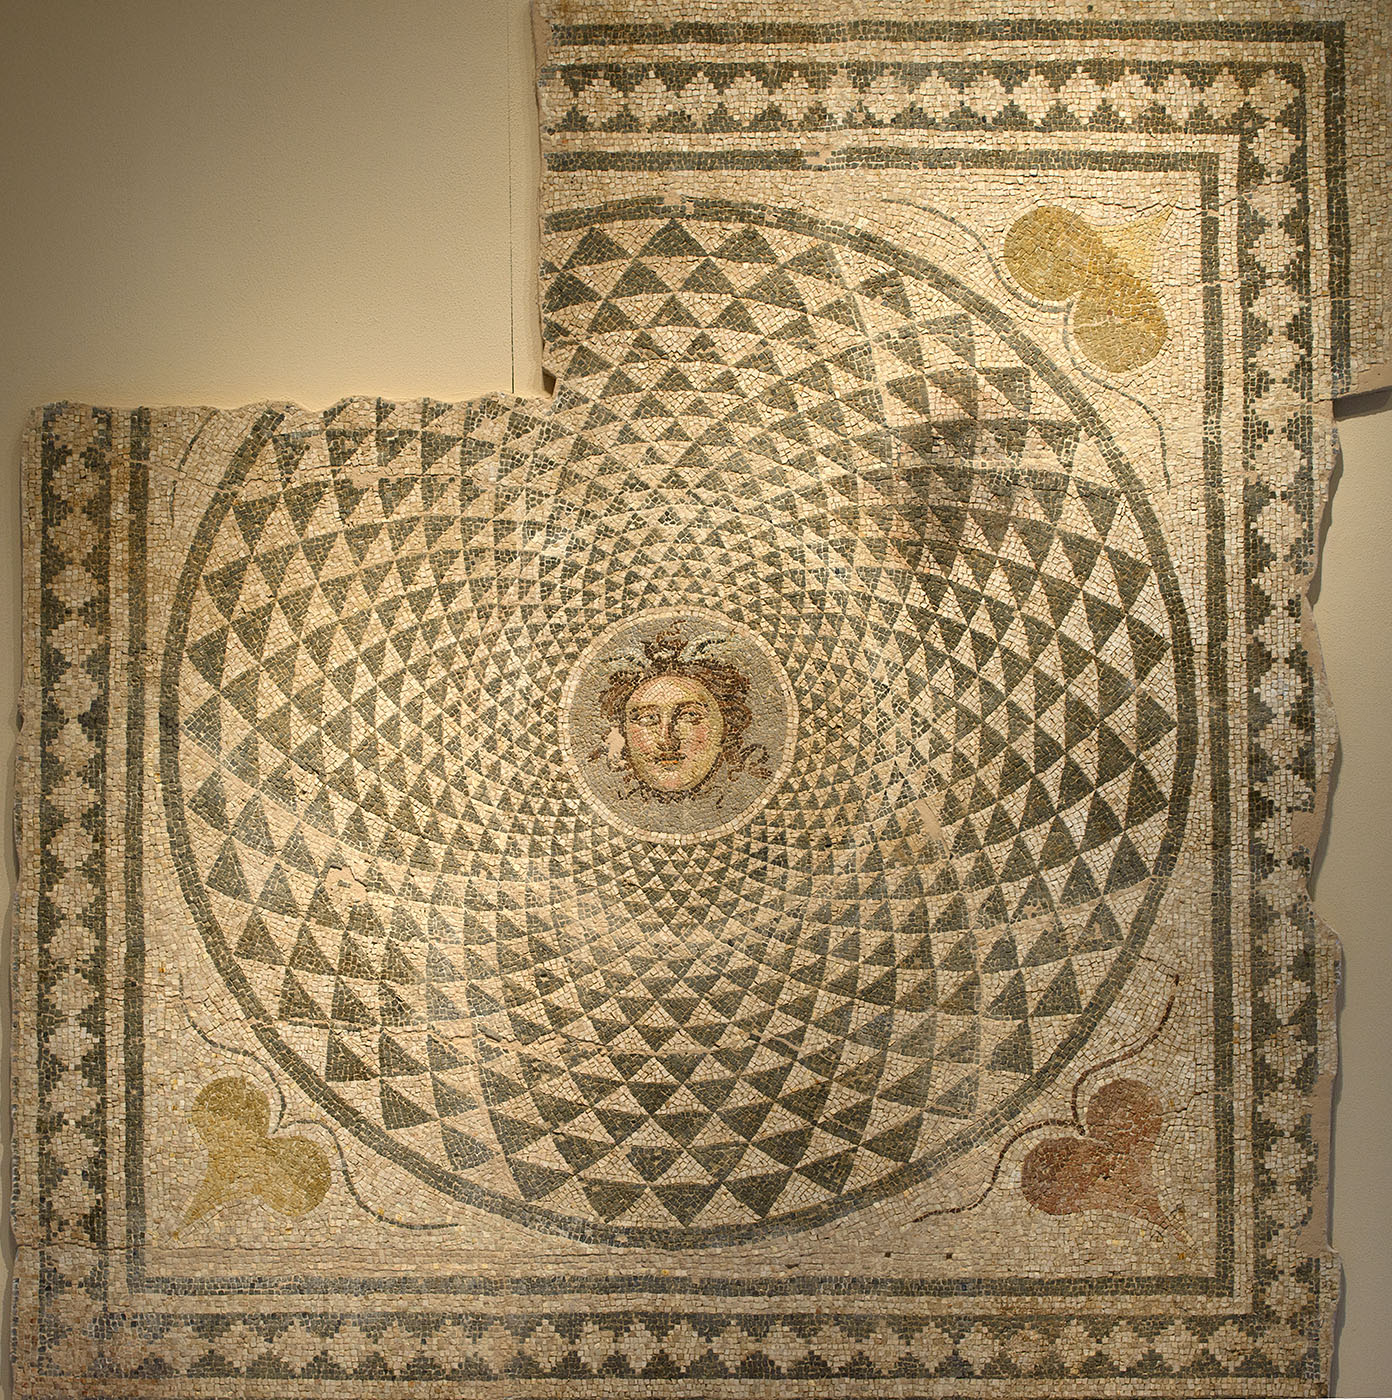 Mosaic floor with Medusa's head. From a room in a large building in Patras. 2nd cent. CE. Patras, New Archaeological Museum